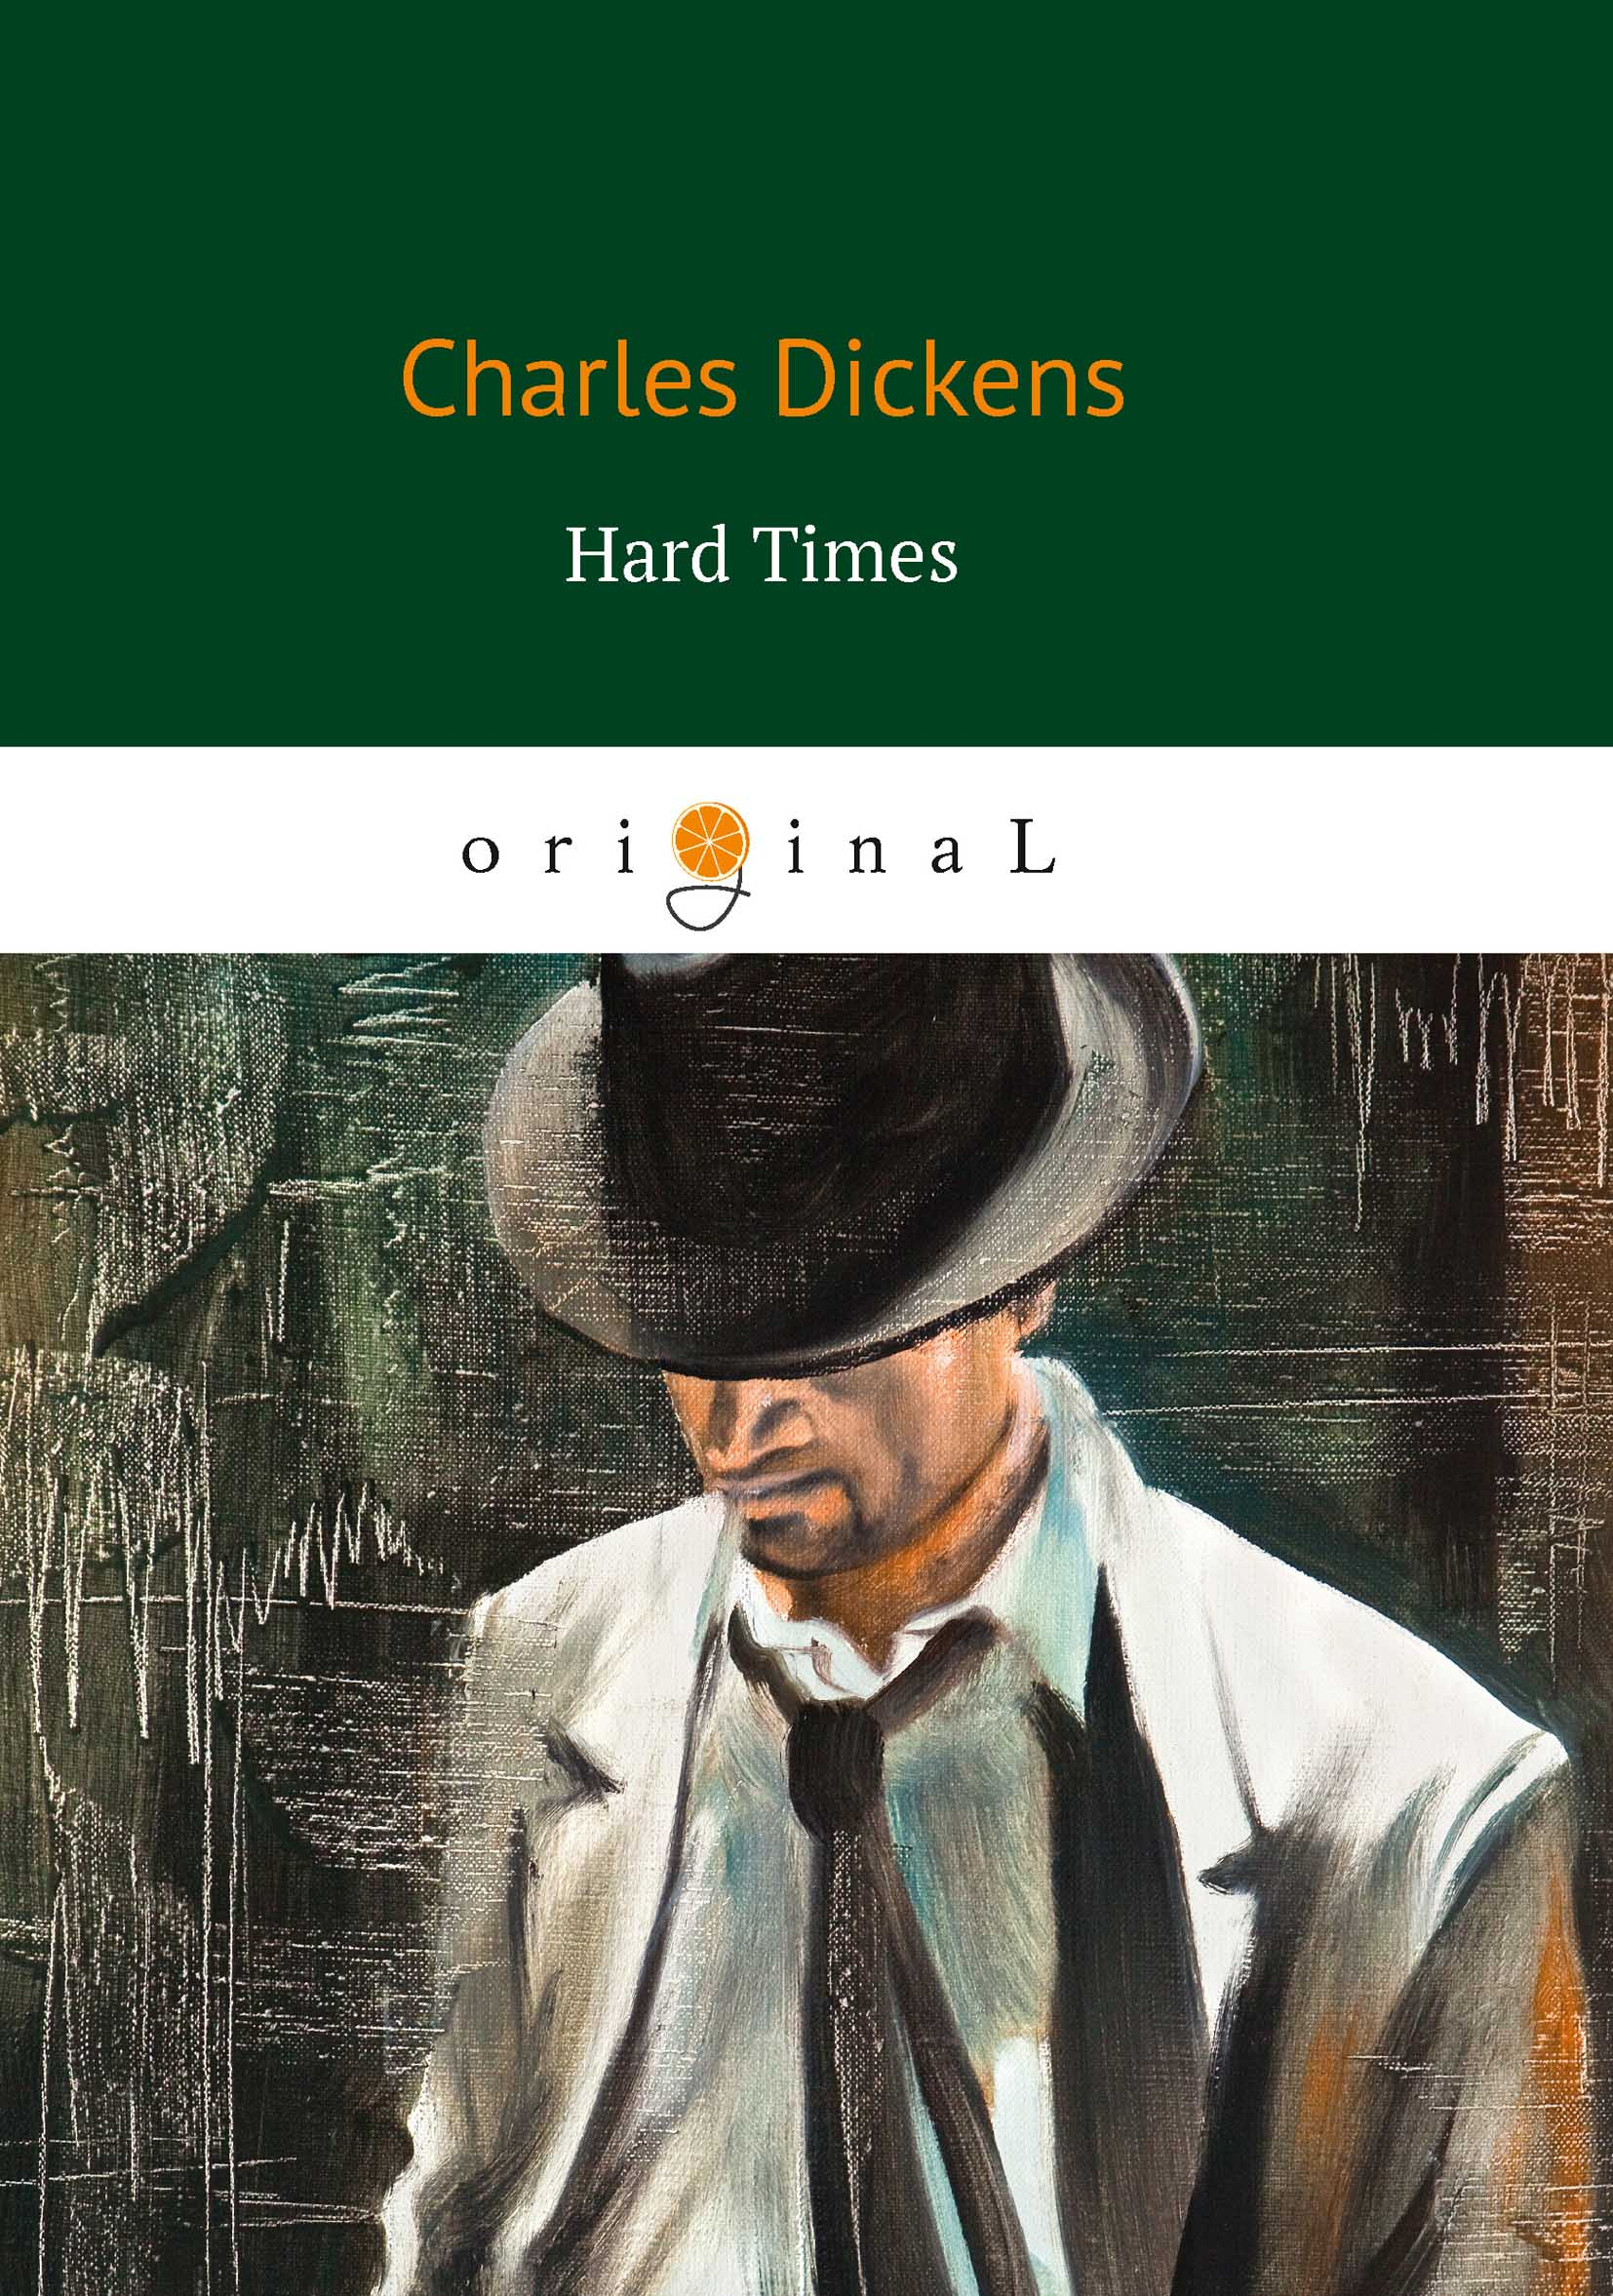 Charles Dickens Hard Times diary of a seducer